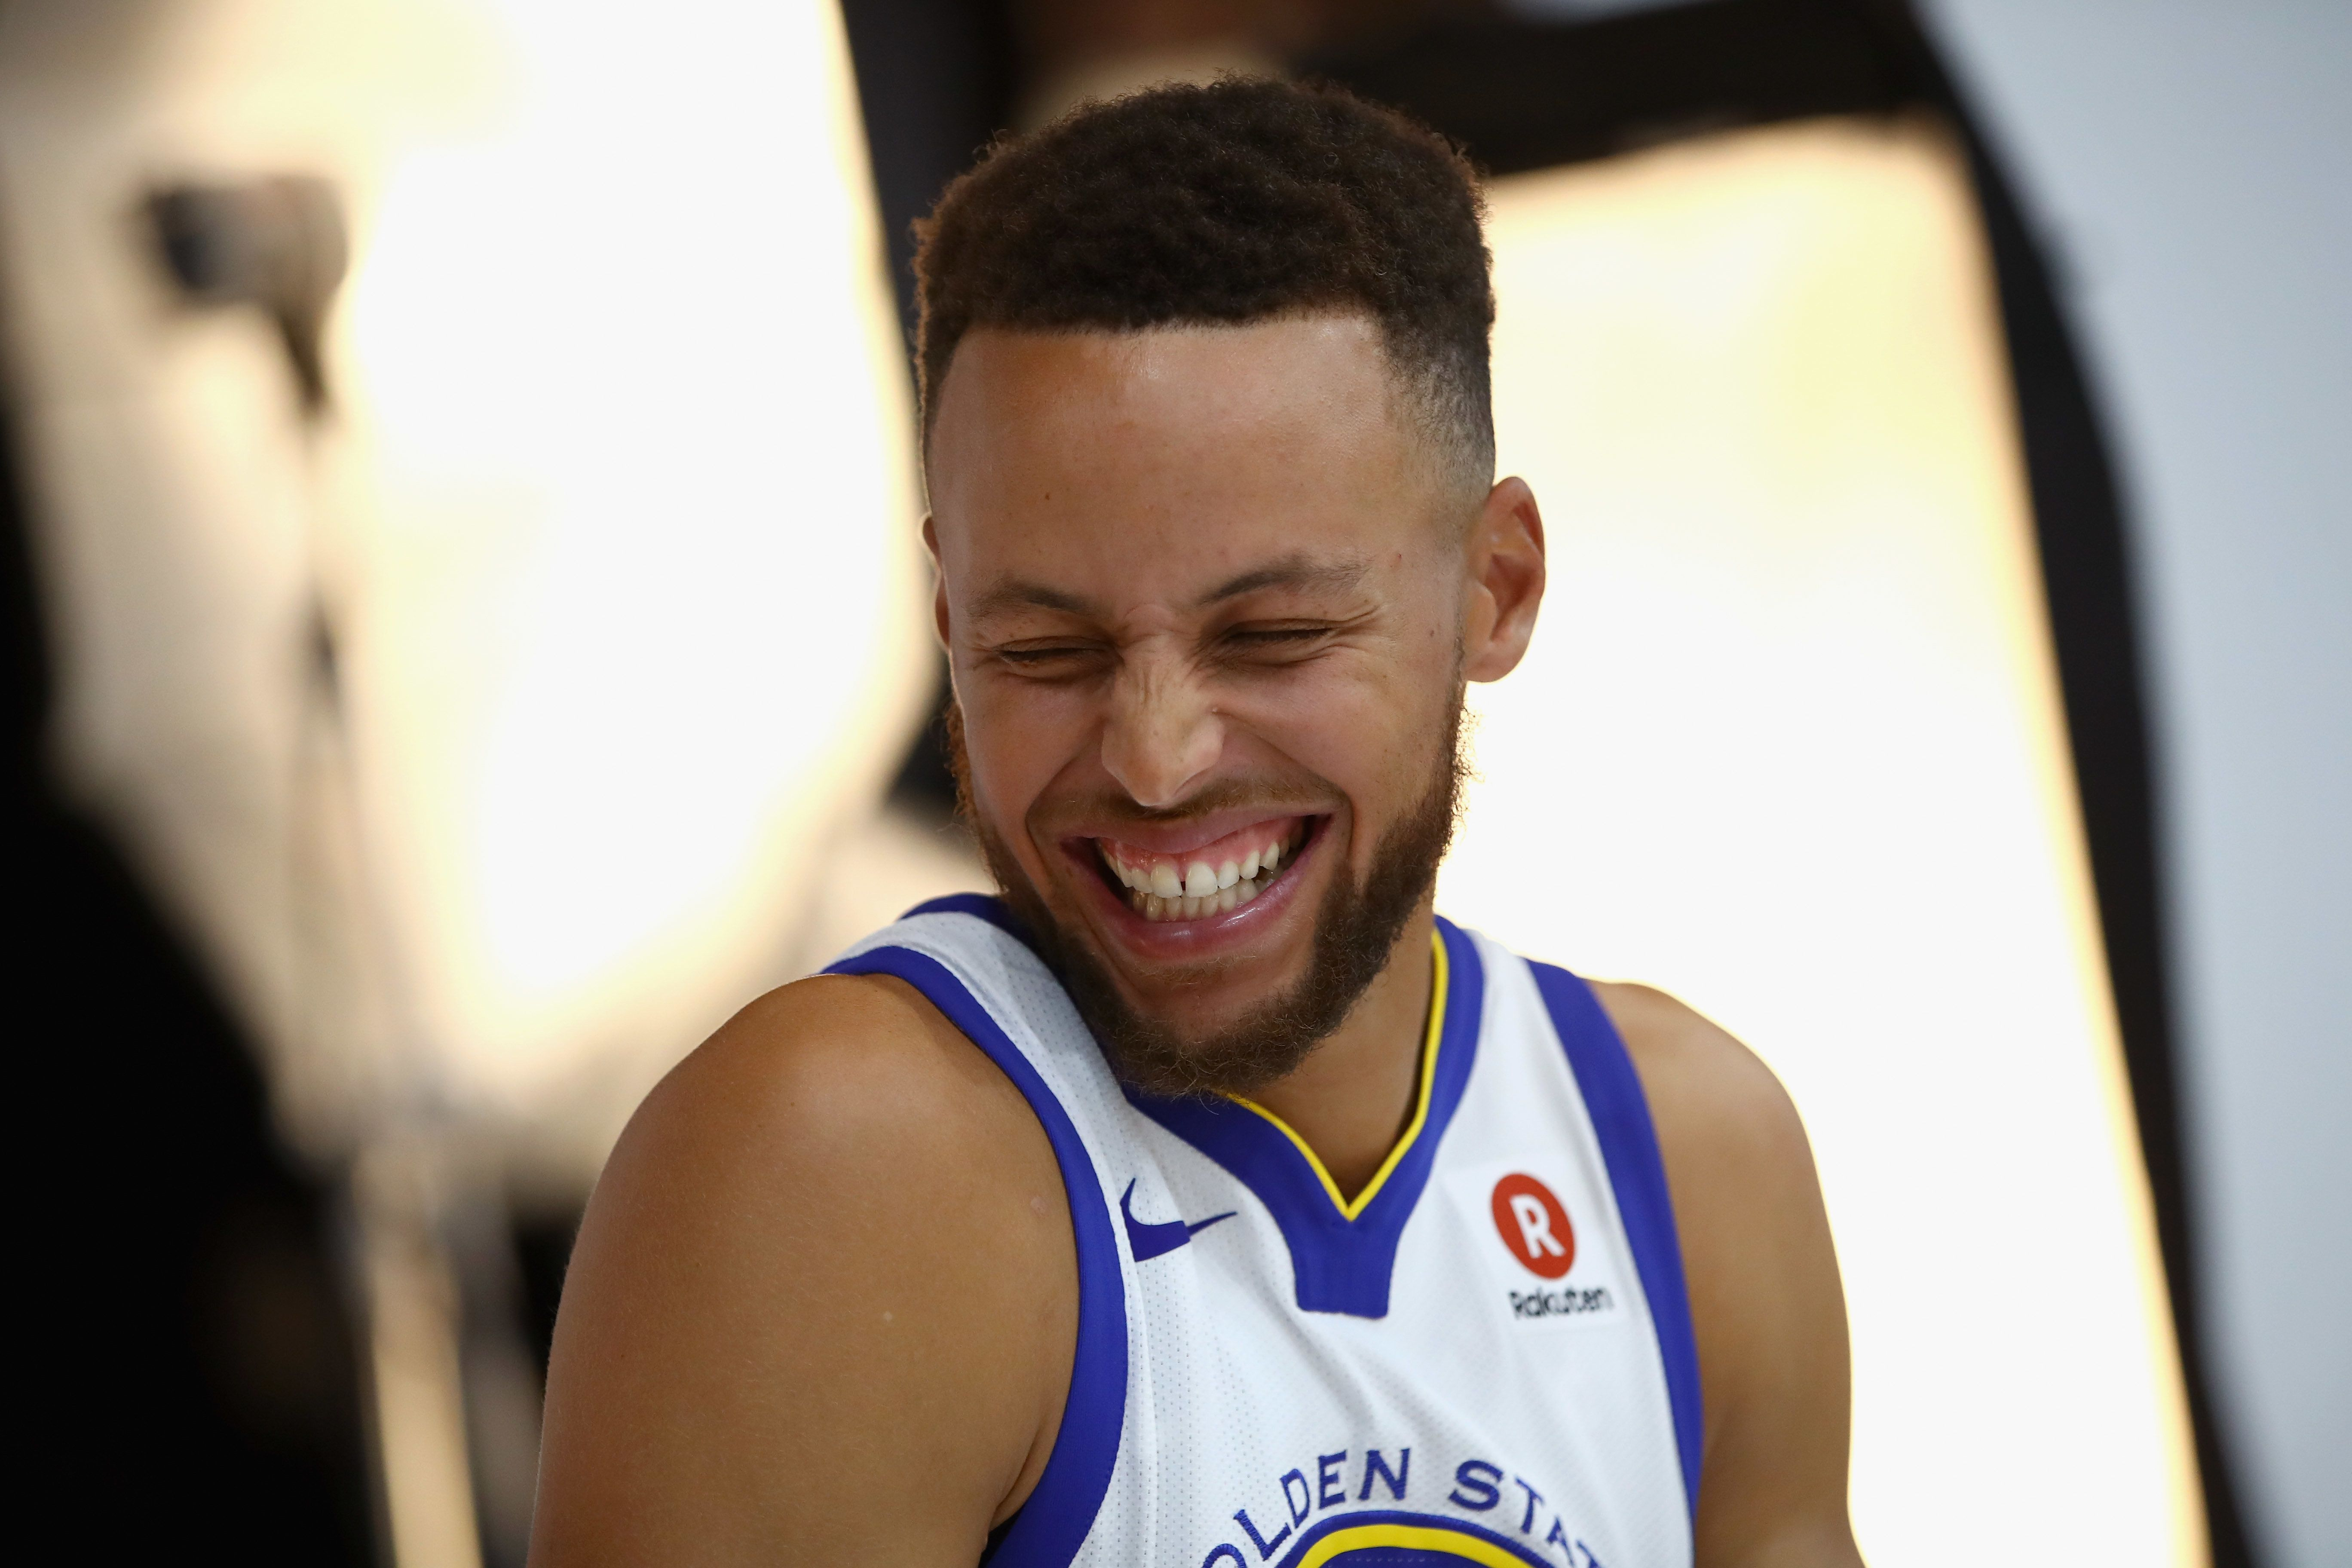 OAKLAND, CA - SEPTEMBER 22:  Stephen Curry #30 of the Golden State Warriors laughs during a photo shoot during the Golden States Warriors media day at Rakuten Performance Center on September 22, 2017 in Oakland, California. NOTE TO USER: User expressly acknowledges and agrees that, by downloading and or using this photograph, User is consenting to the terms and conditions of the Getty Images License Agreement.  (Photo by Ezra Shaw/Getty Images)